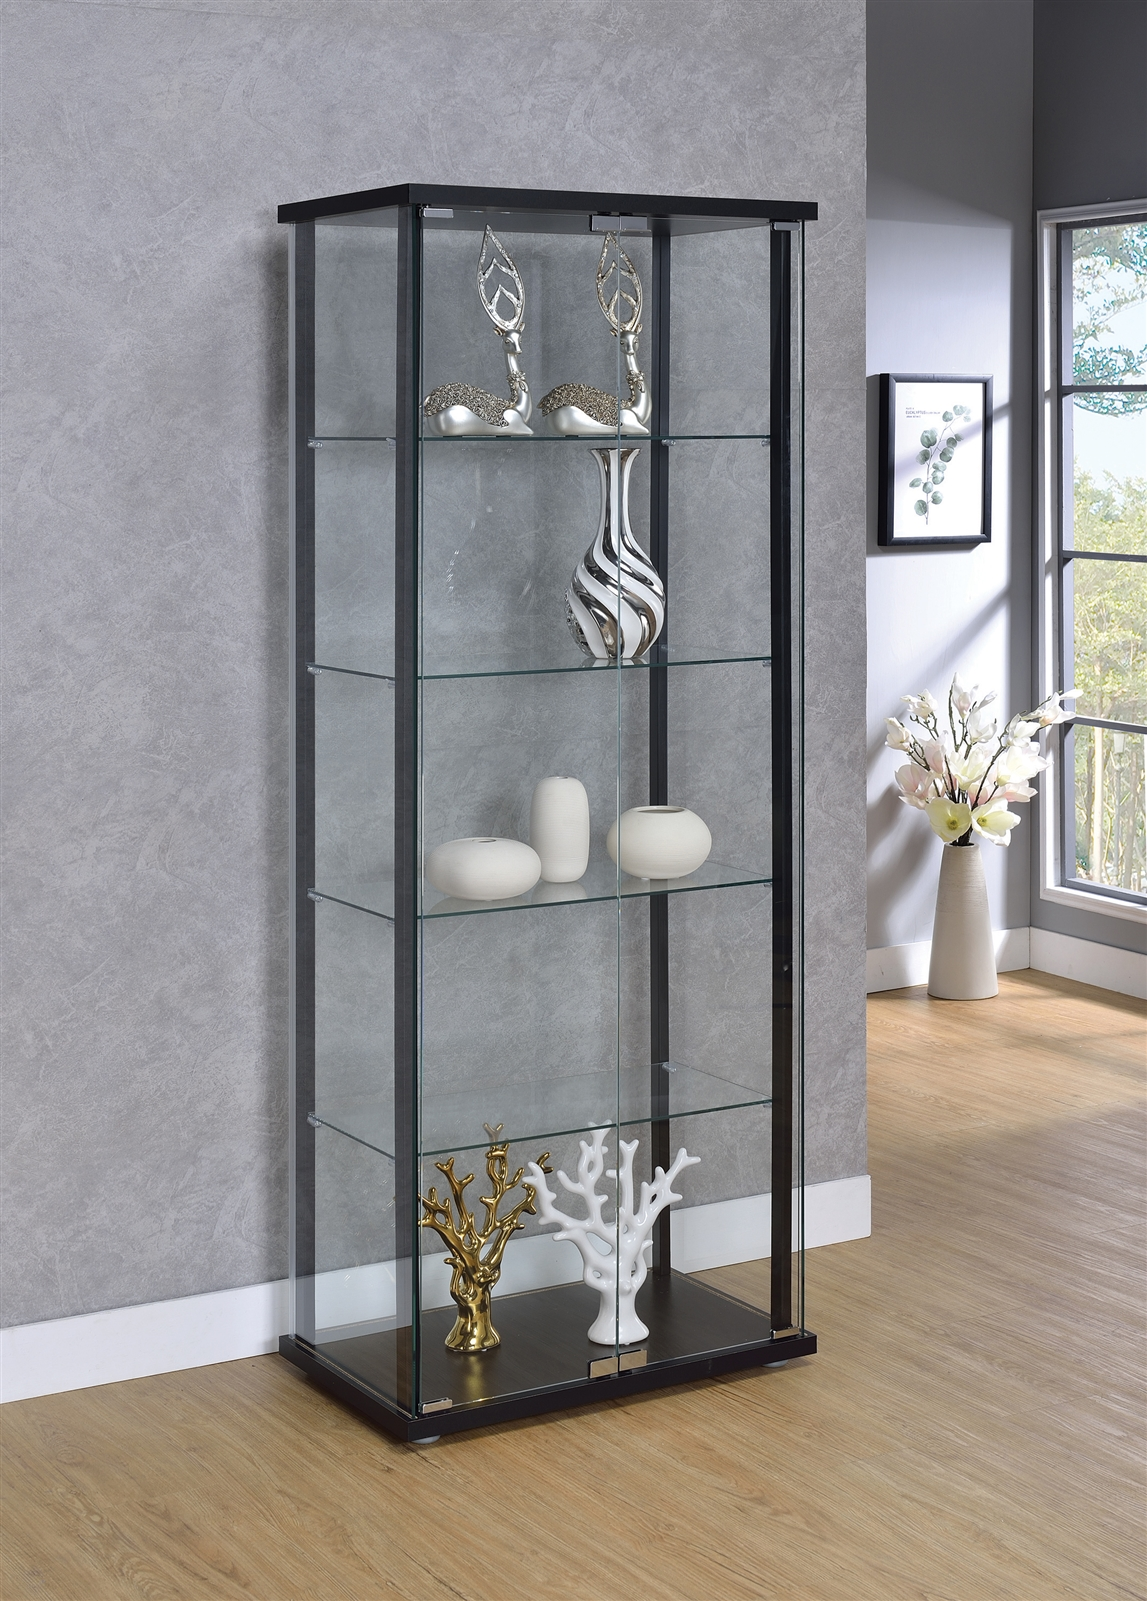 5-Shelf Glass Curio Cabinet Black And Clear - Coaster 950170